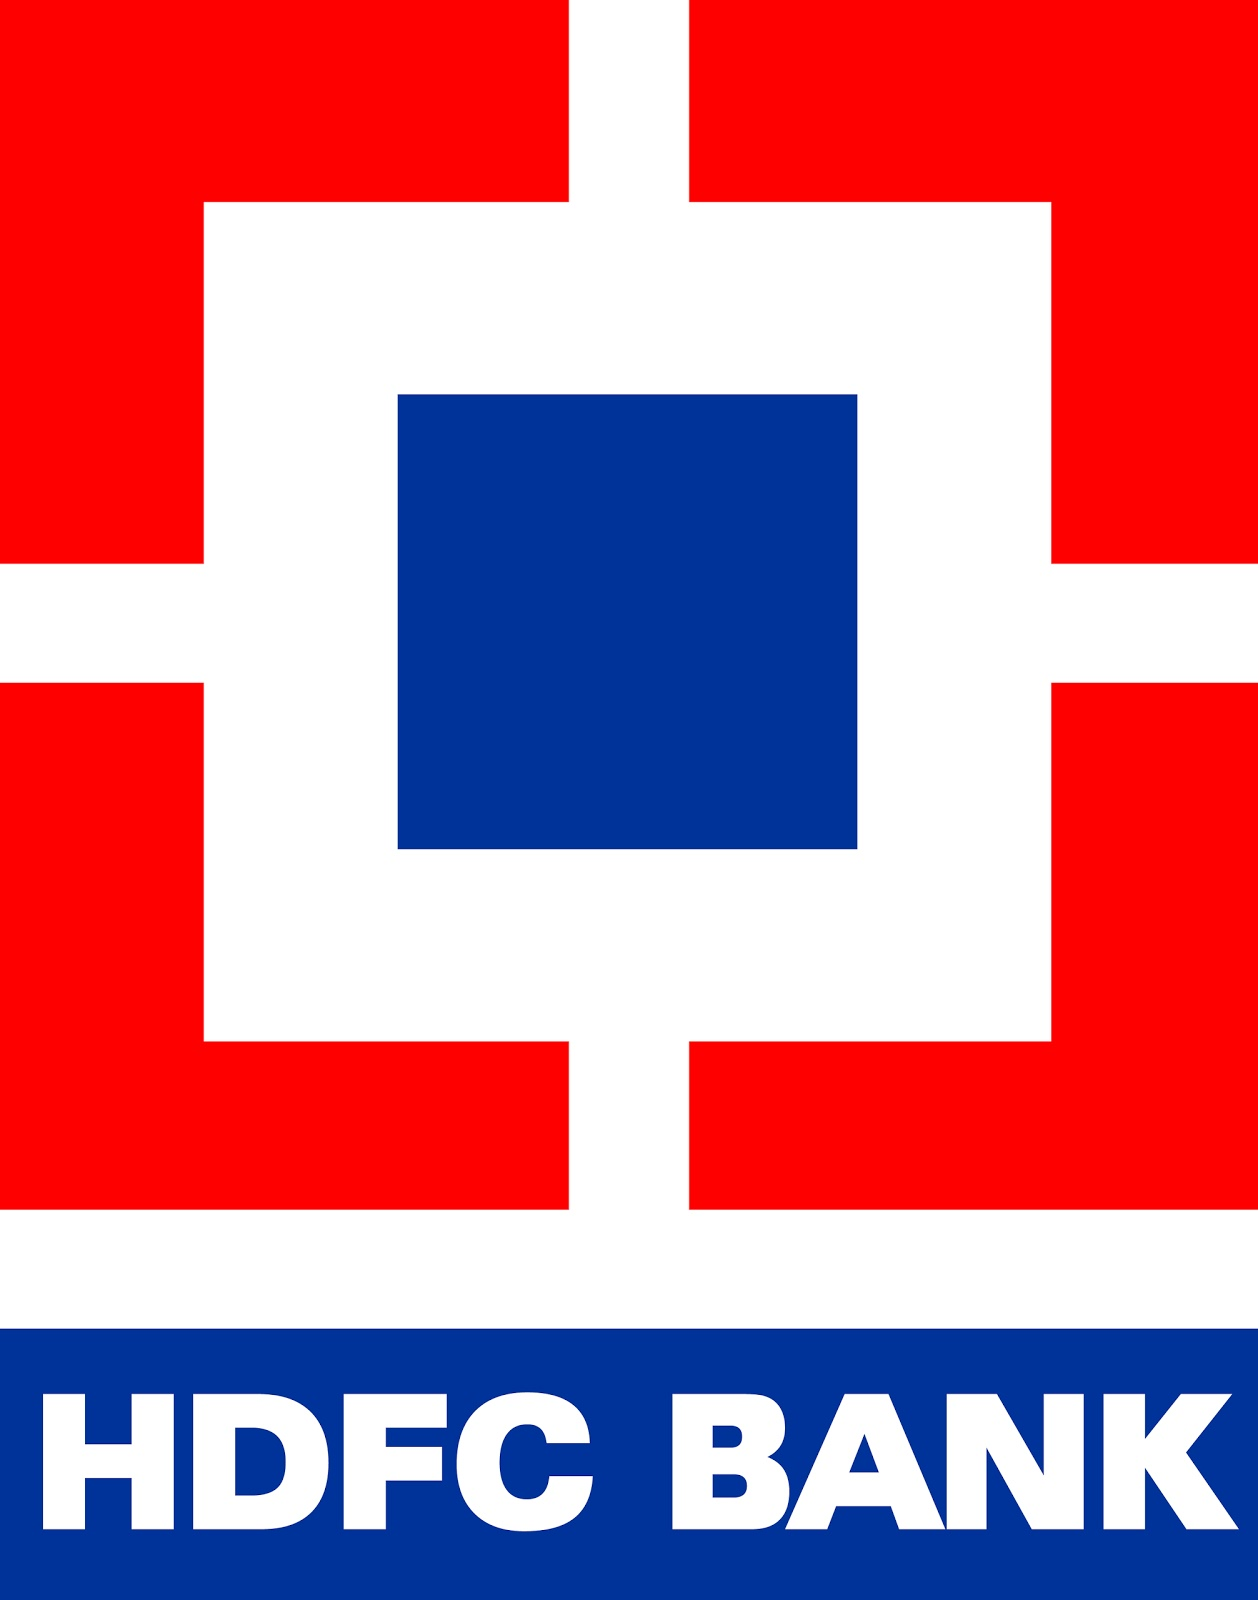 Hdfc bank logo and tagline hdfcbanklogo hdfc bank logo reheart Gallery